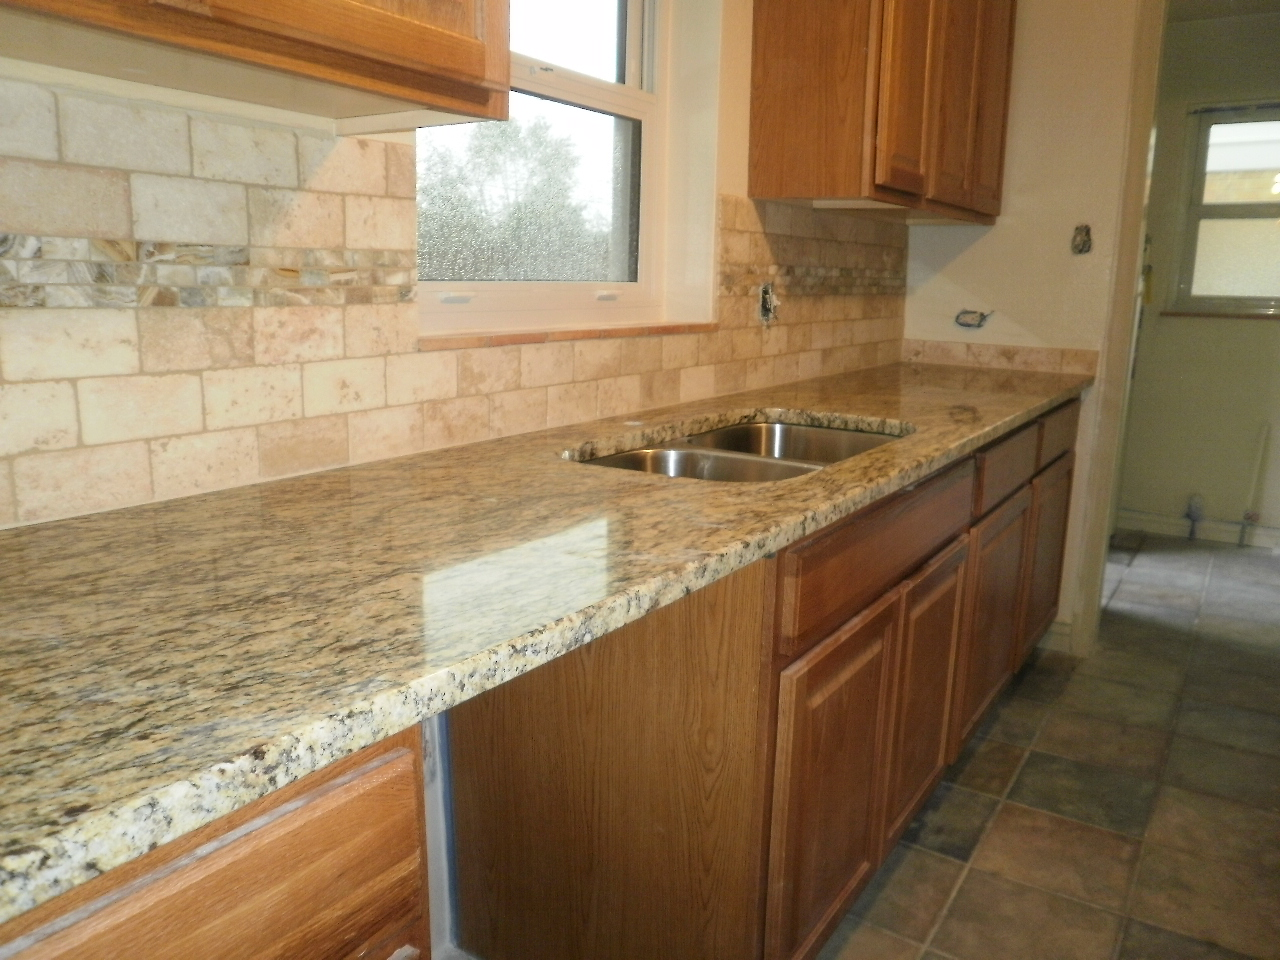 in making the granite countertop and backsplash tile design choices